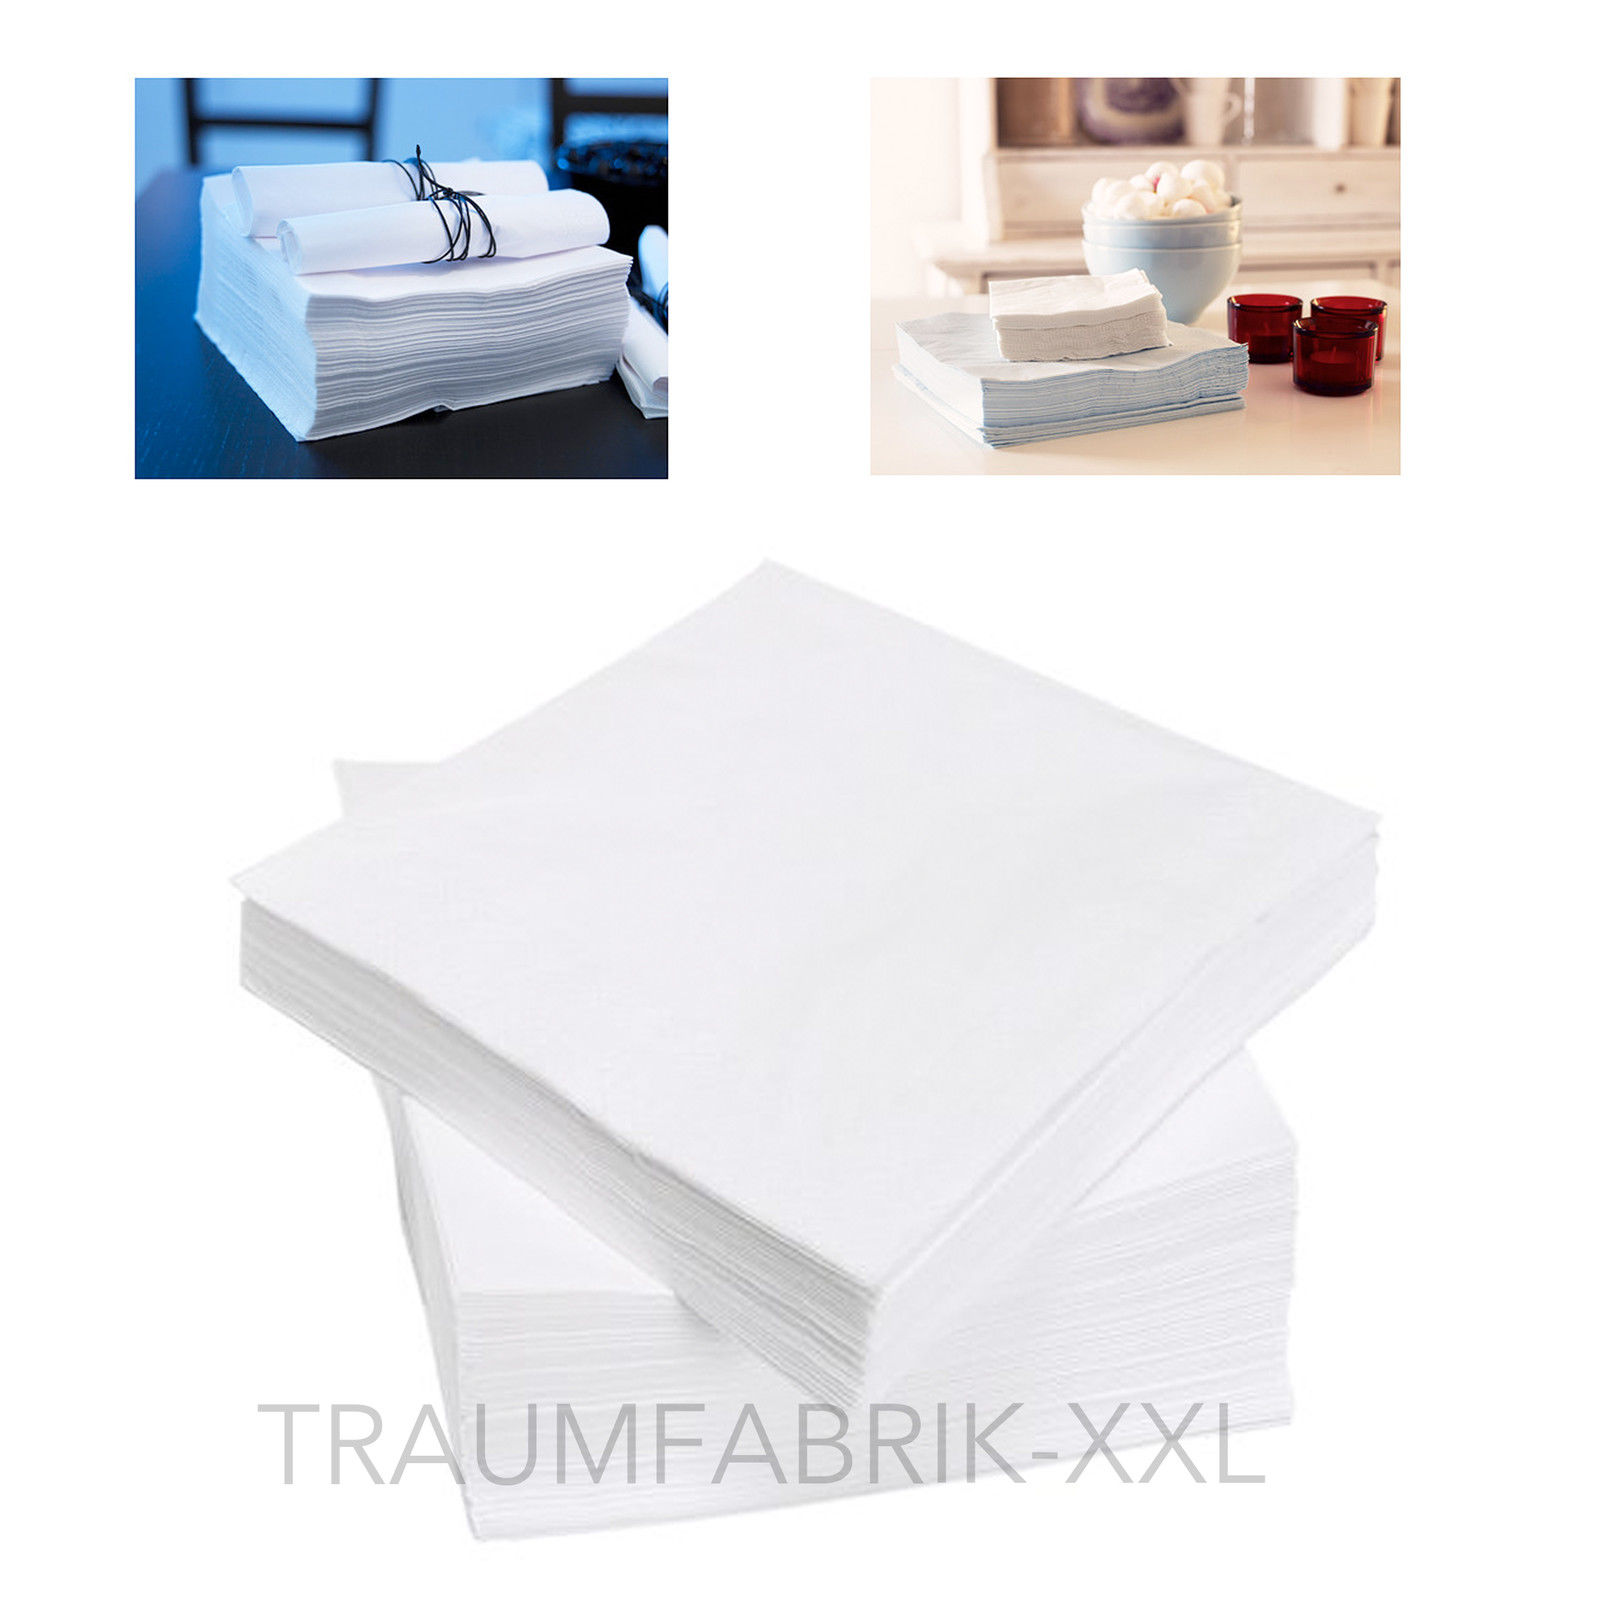 100 st ck ikea papierservietten 40 x 40 cm papier servietten weiss gastronomie traumfabrik xxl. Black Bedroom Furniture Sets. Home Design Ideas